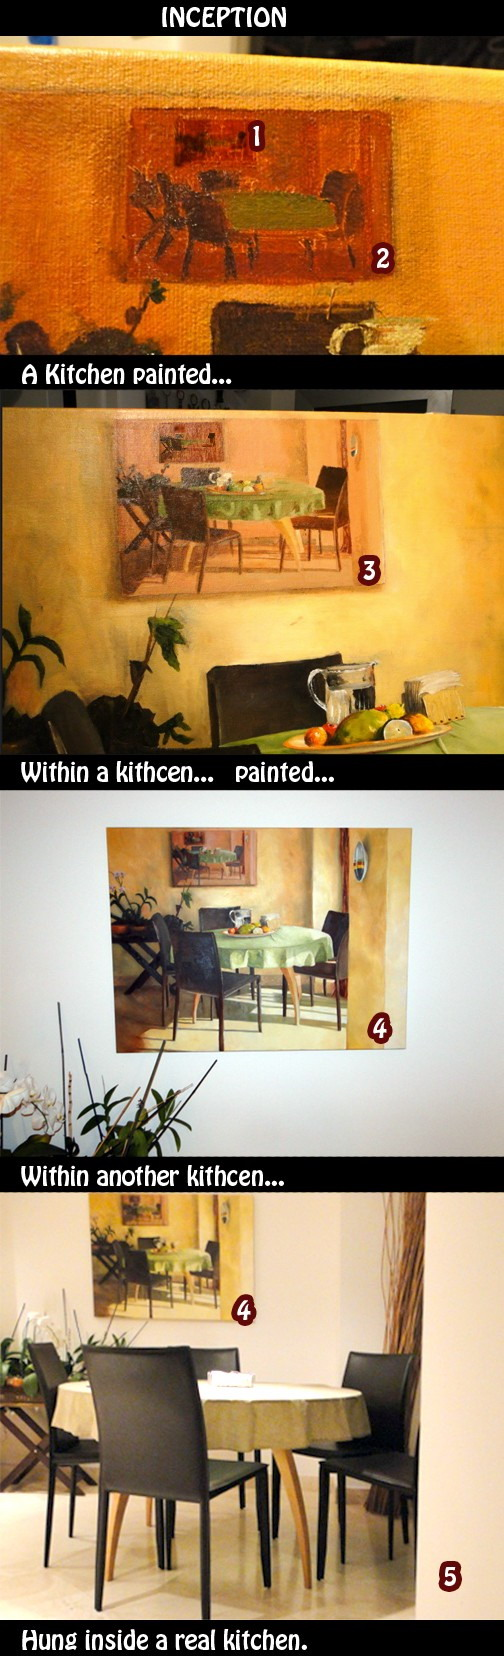 Inception kitchen painting